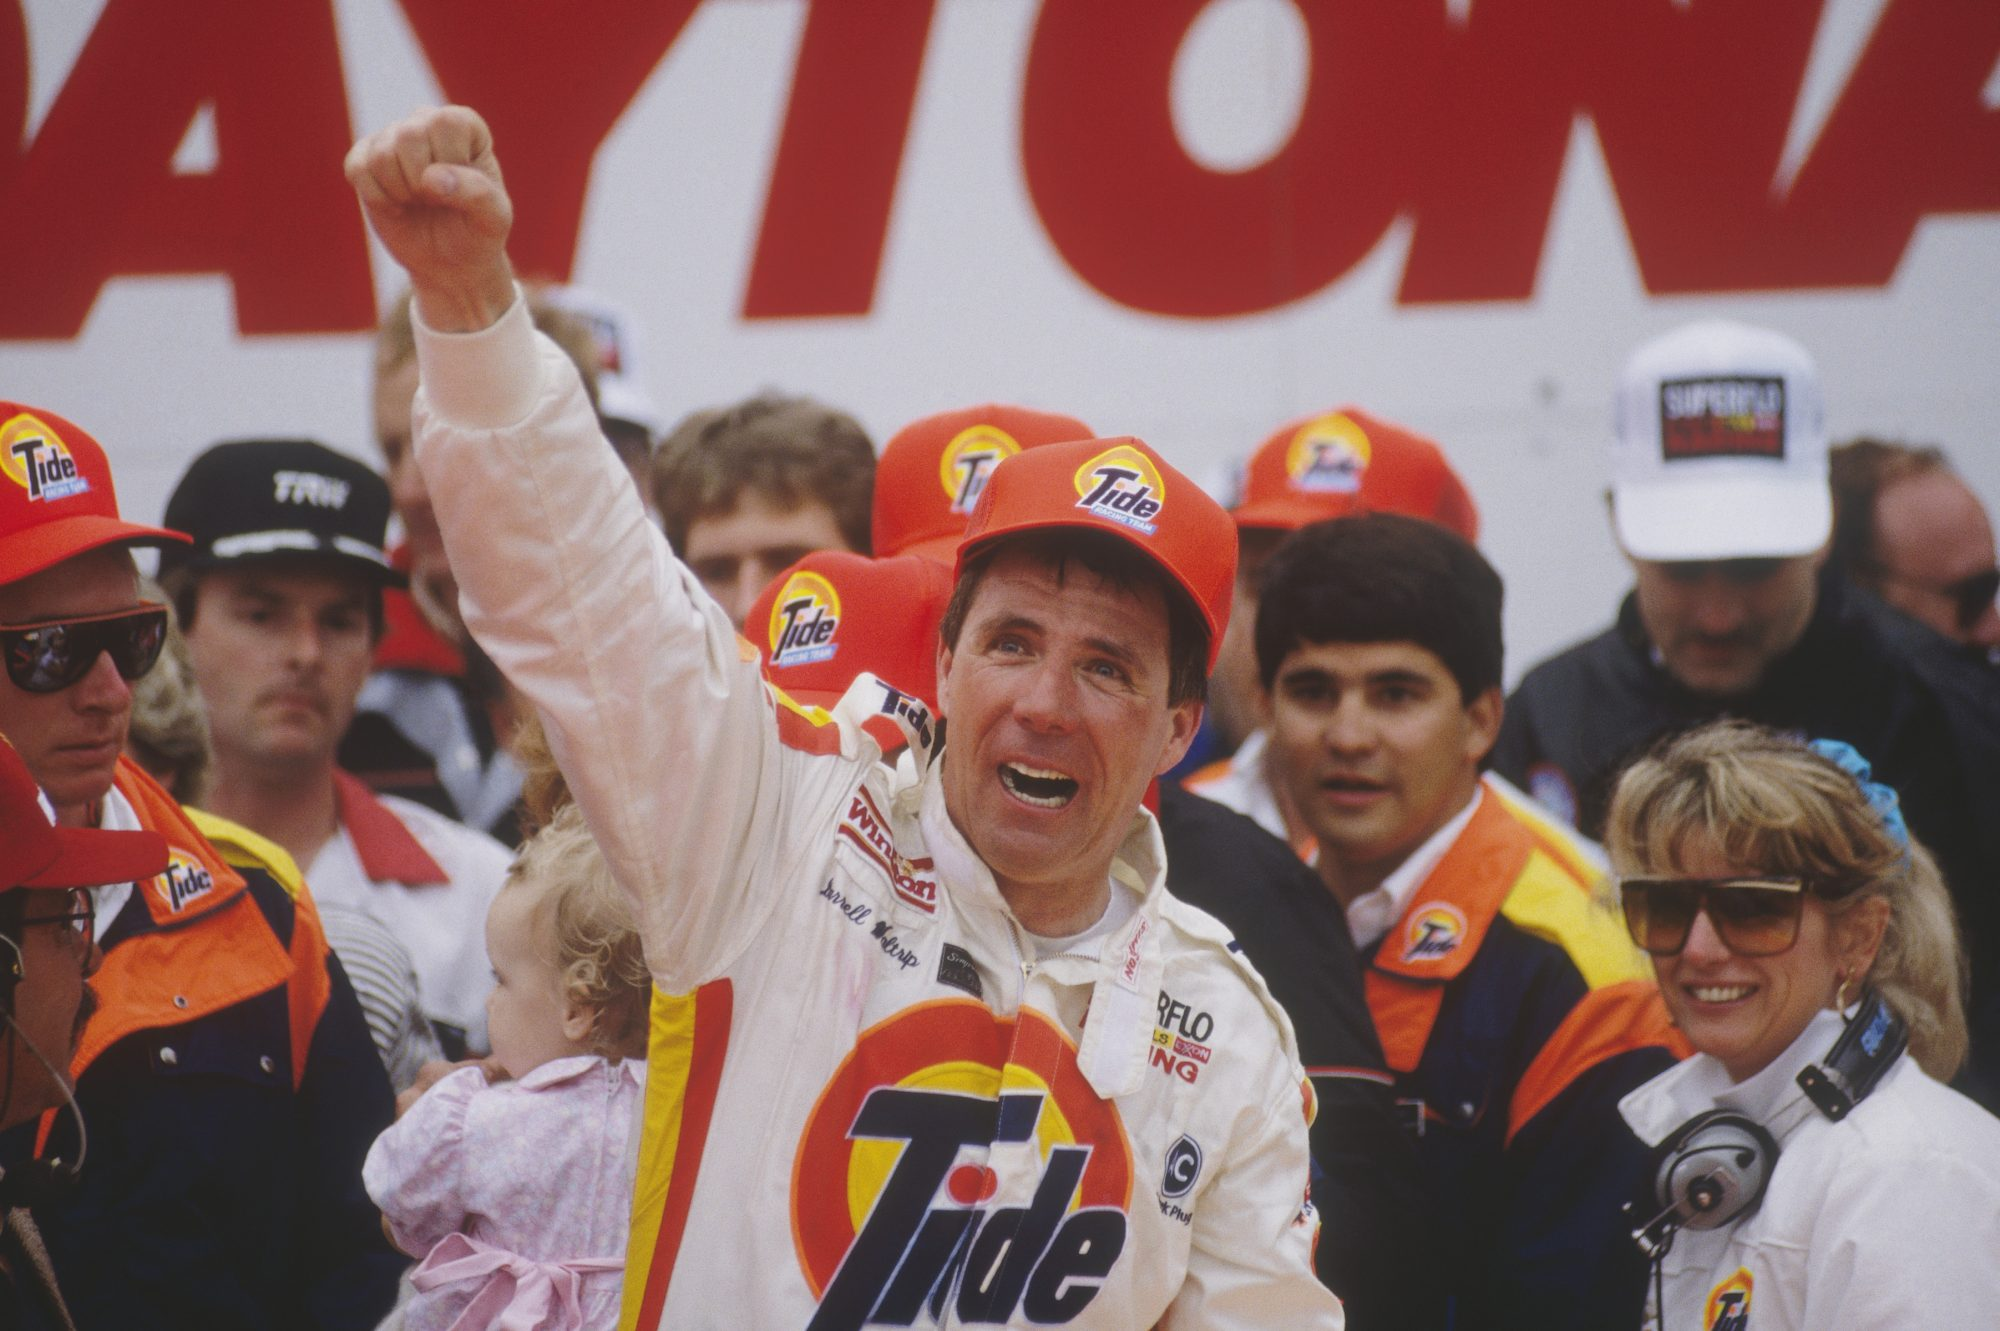 Darrell Waltrip Wins Daytona 500